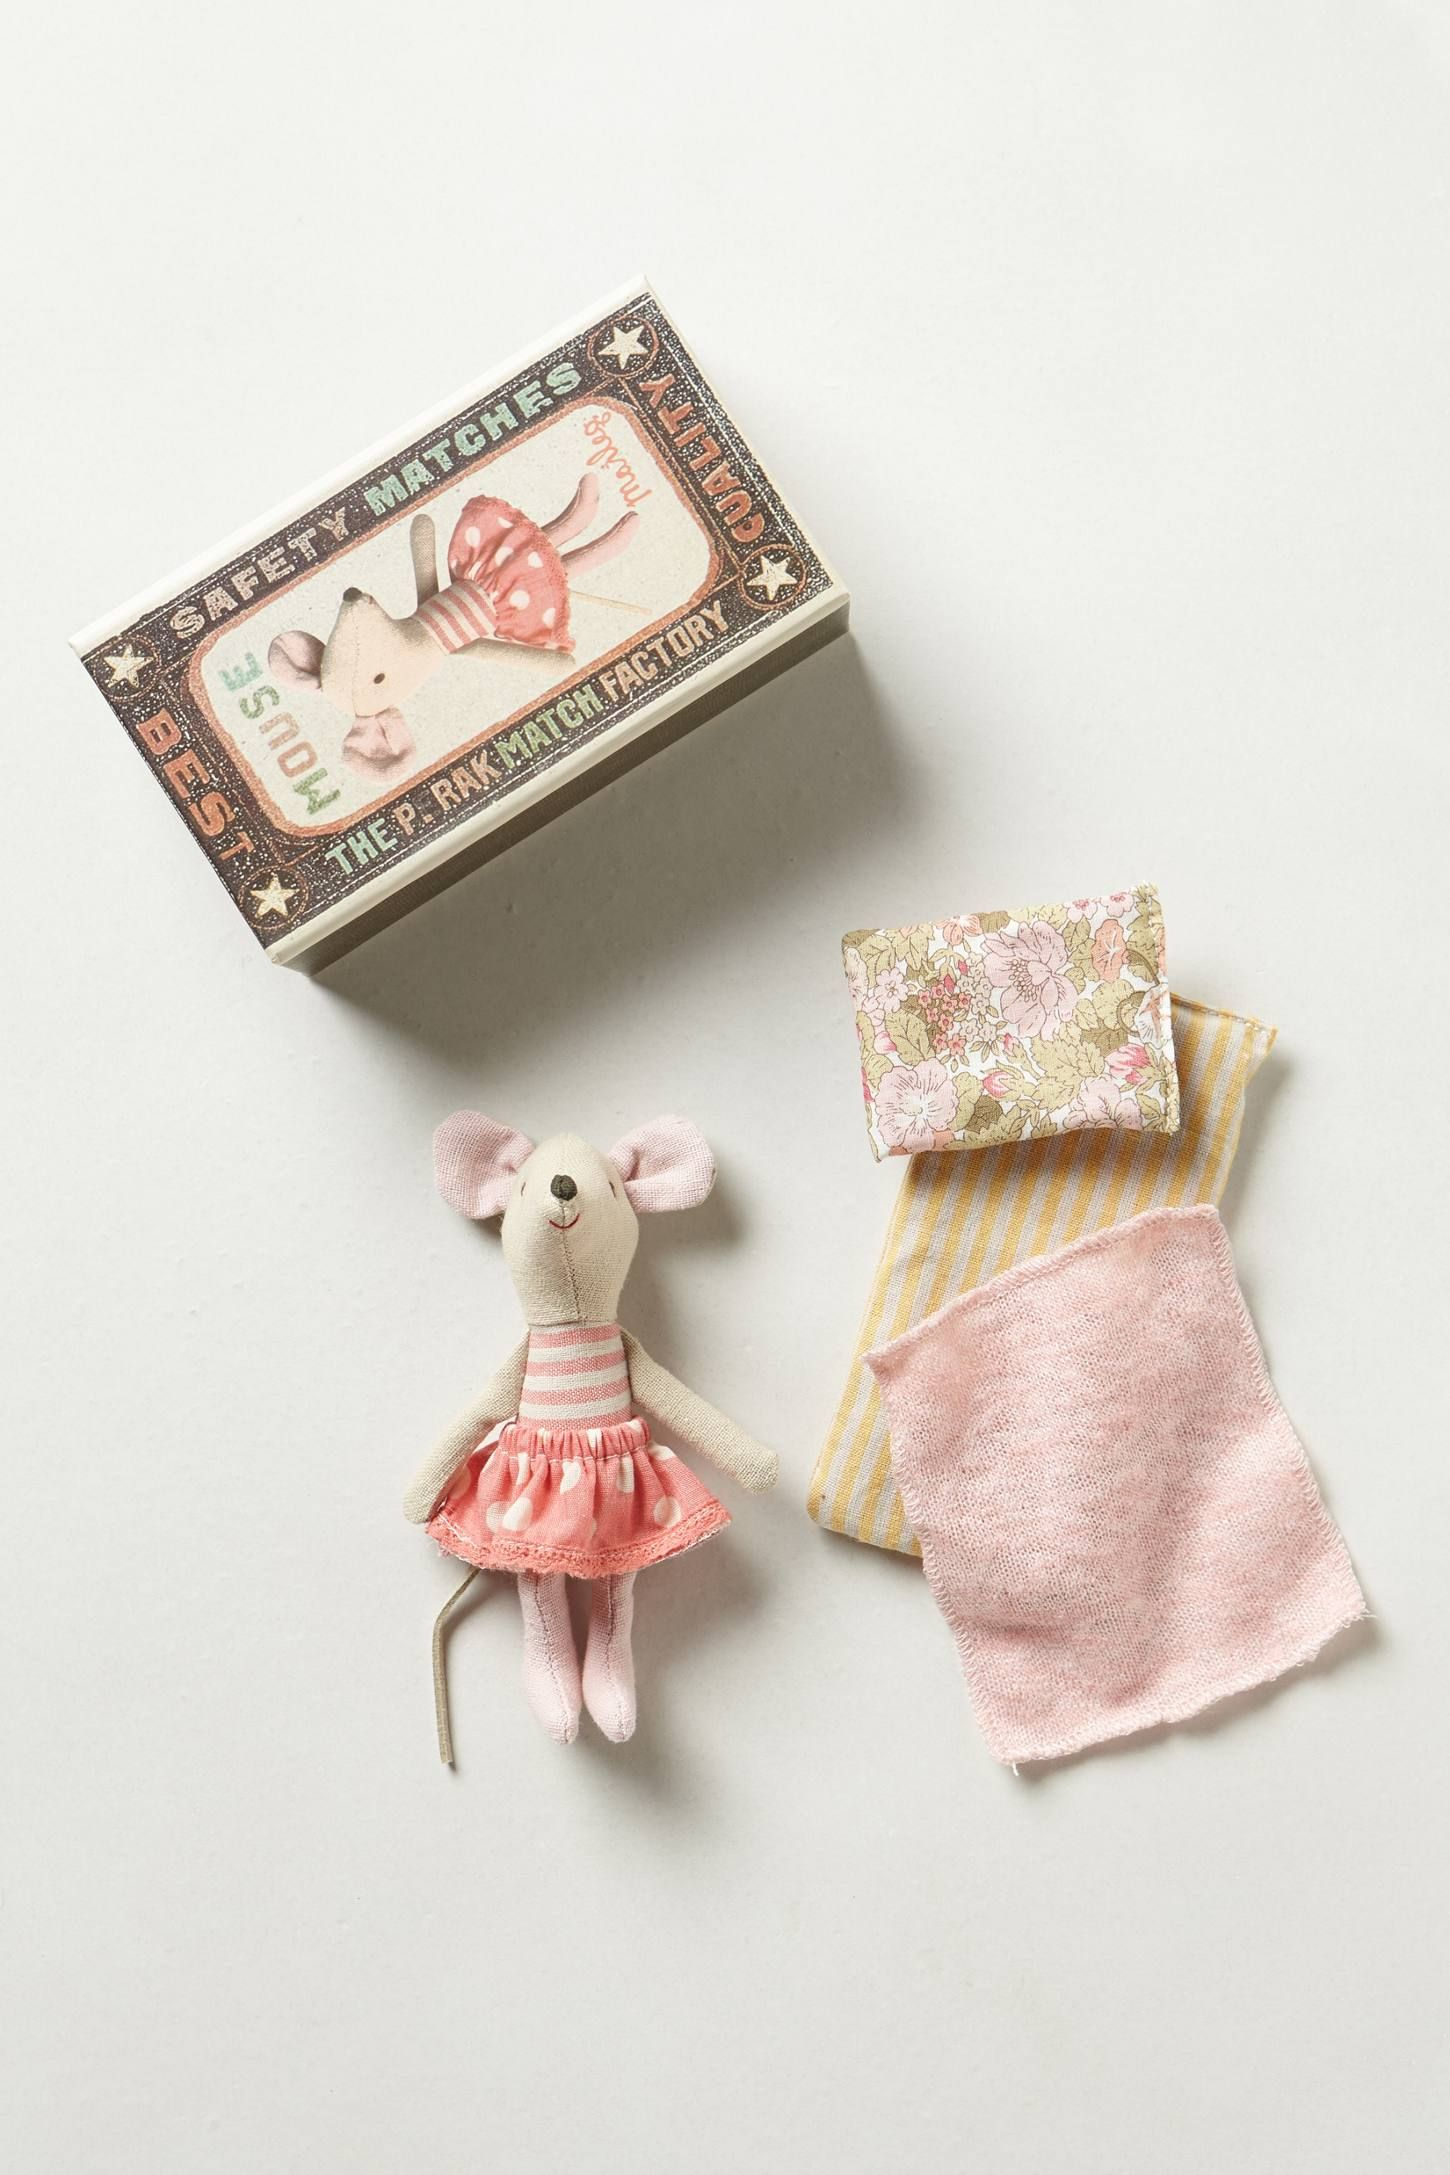 Big Sister In A Box - anthropologie.com